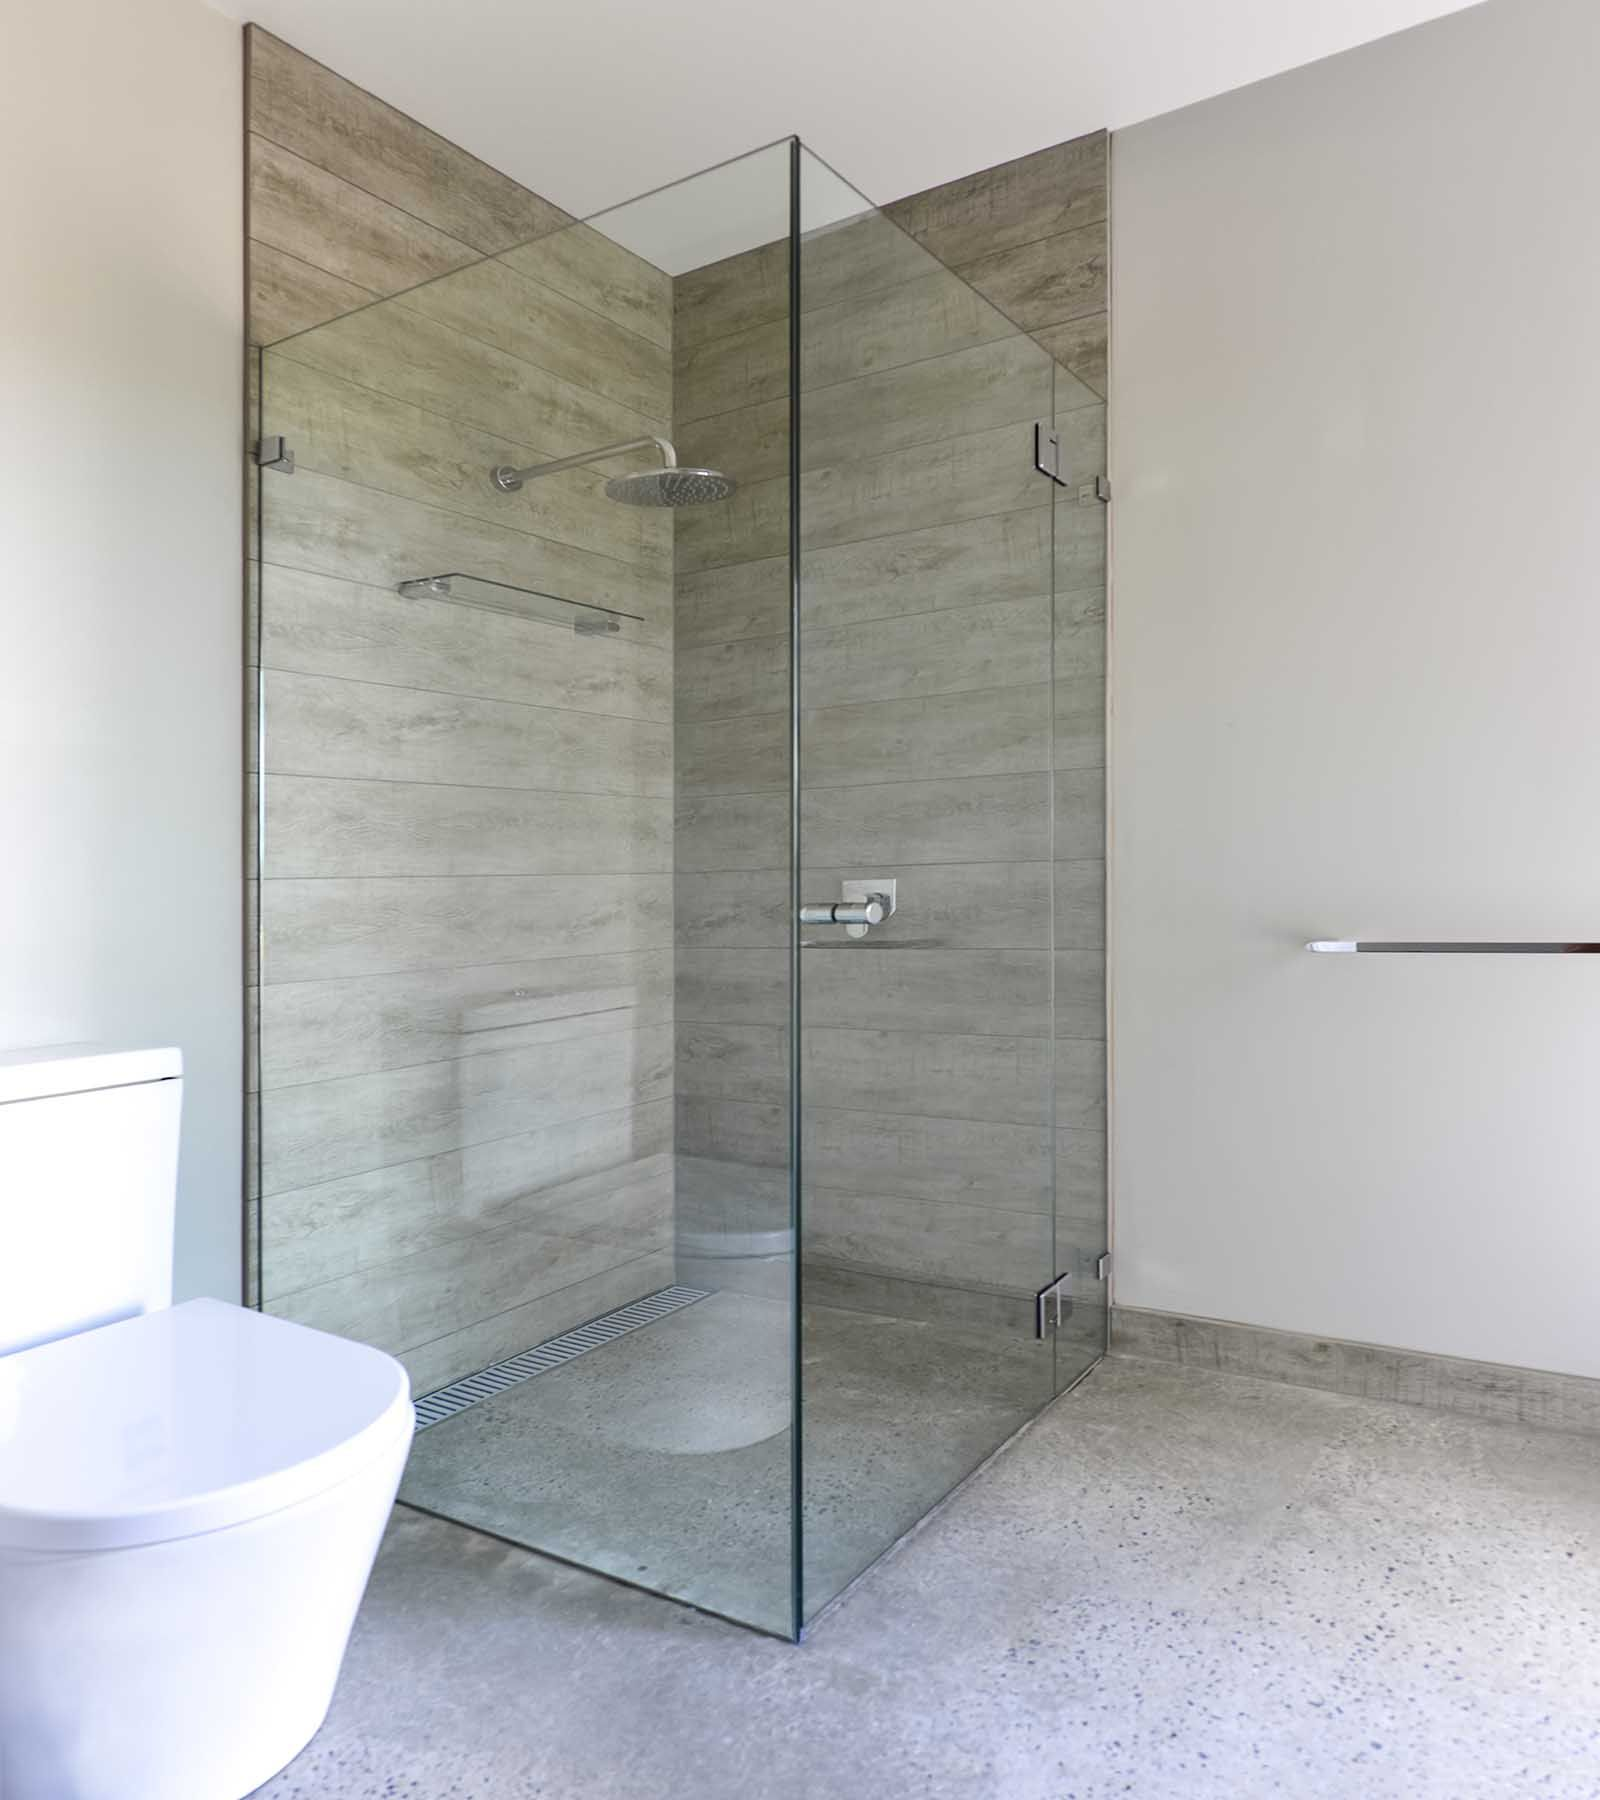 Frameless Shower Screens Glass Doors Expertly Custom Measured & Installed  to Suit Any Configuration  Contact 52 22 46 40 - 24 Yrs Experience  7 Yr  Wty*.